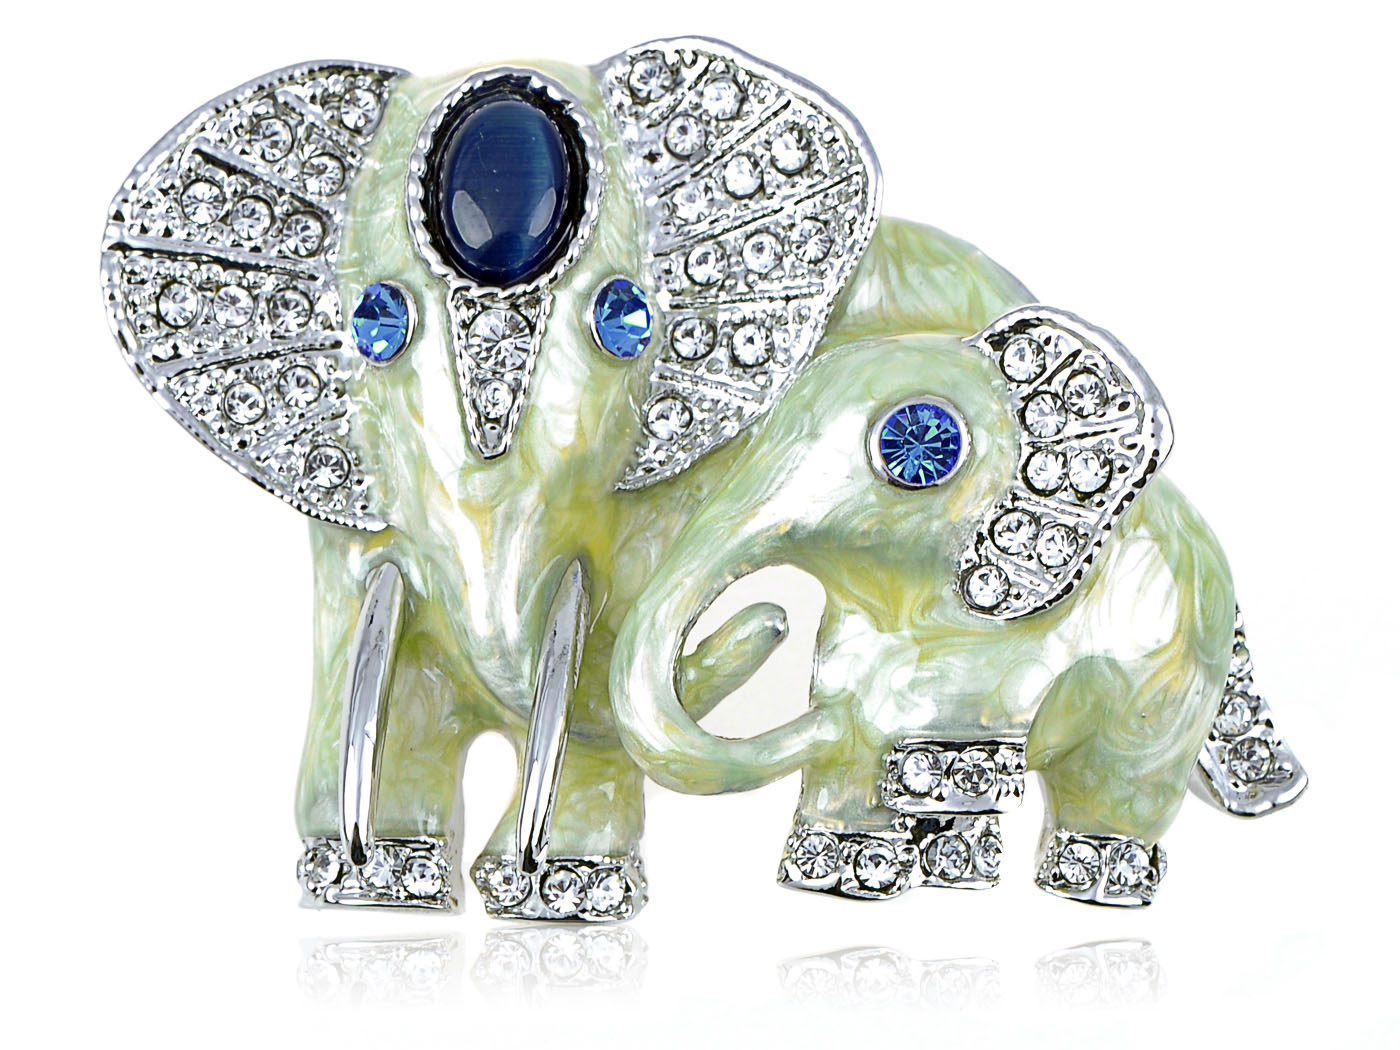 Swarovski Crystal Elements Synthetic Sapphire Eyed Pearlescent Paint Elephant... by